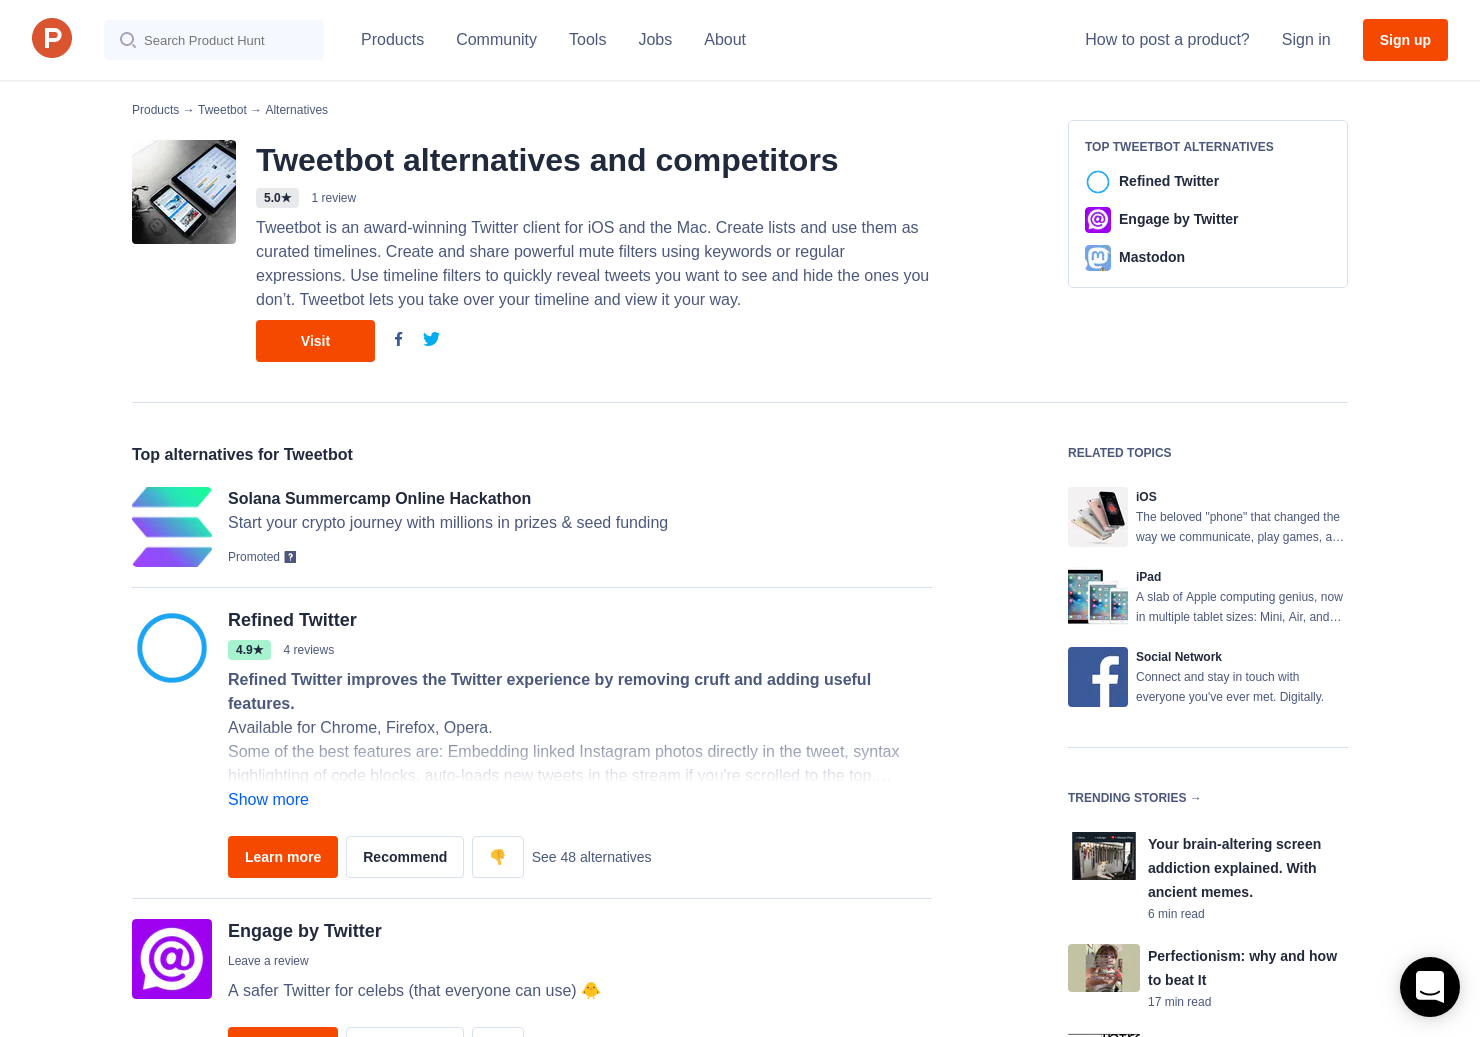 14 Alternatives to Tweetbot 4 for iPhone, iPad | Product Hunt